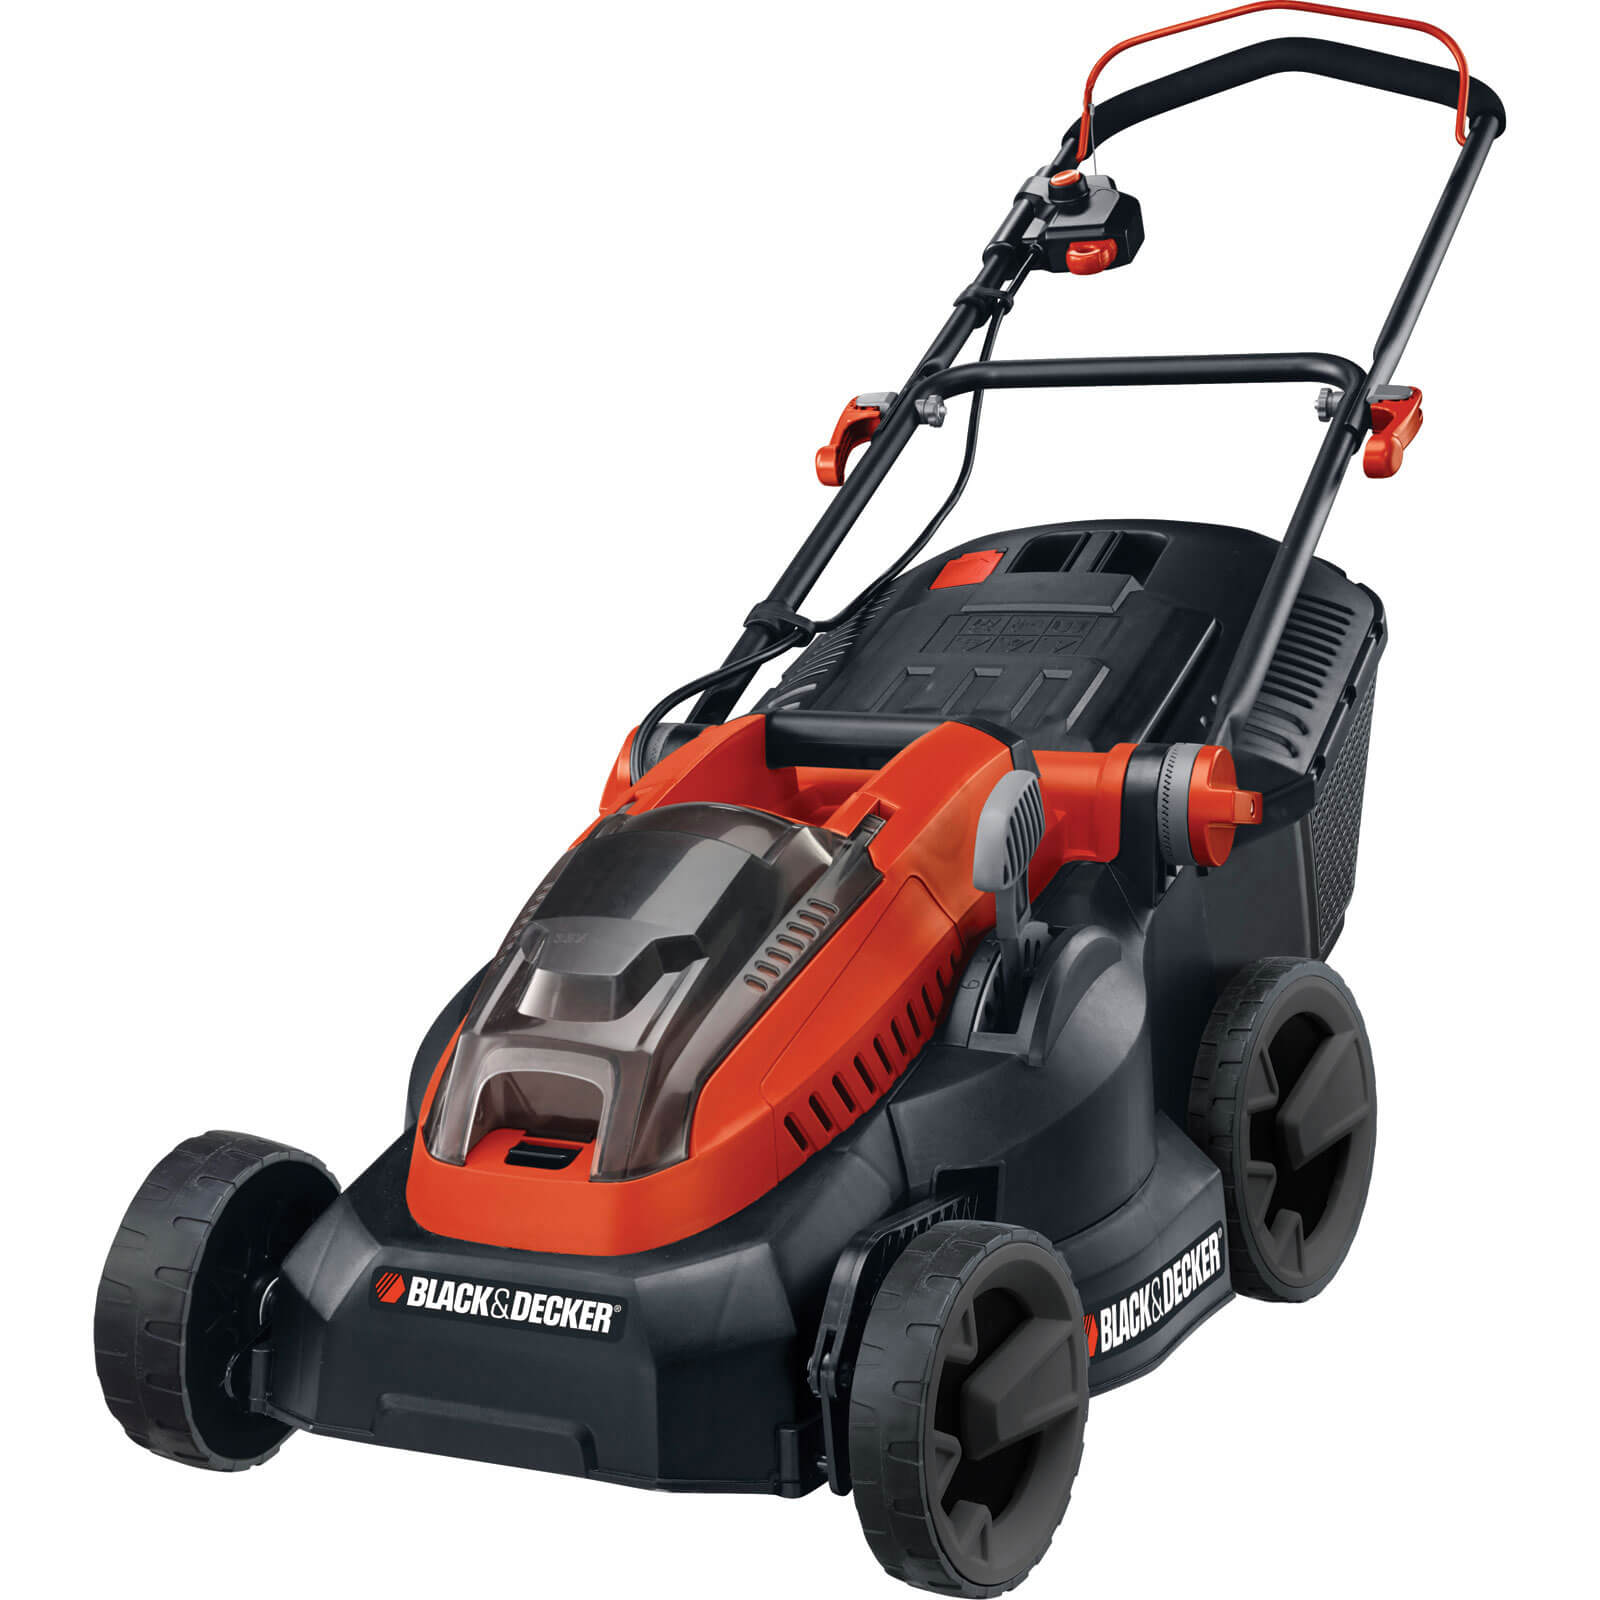 Black & Decker CLM3820L2 36v Cordless Lawn Mower 380mm Cut Width with 2 Lithium Ion Batteries 2ah